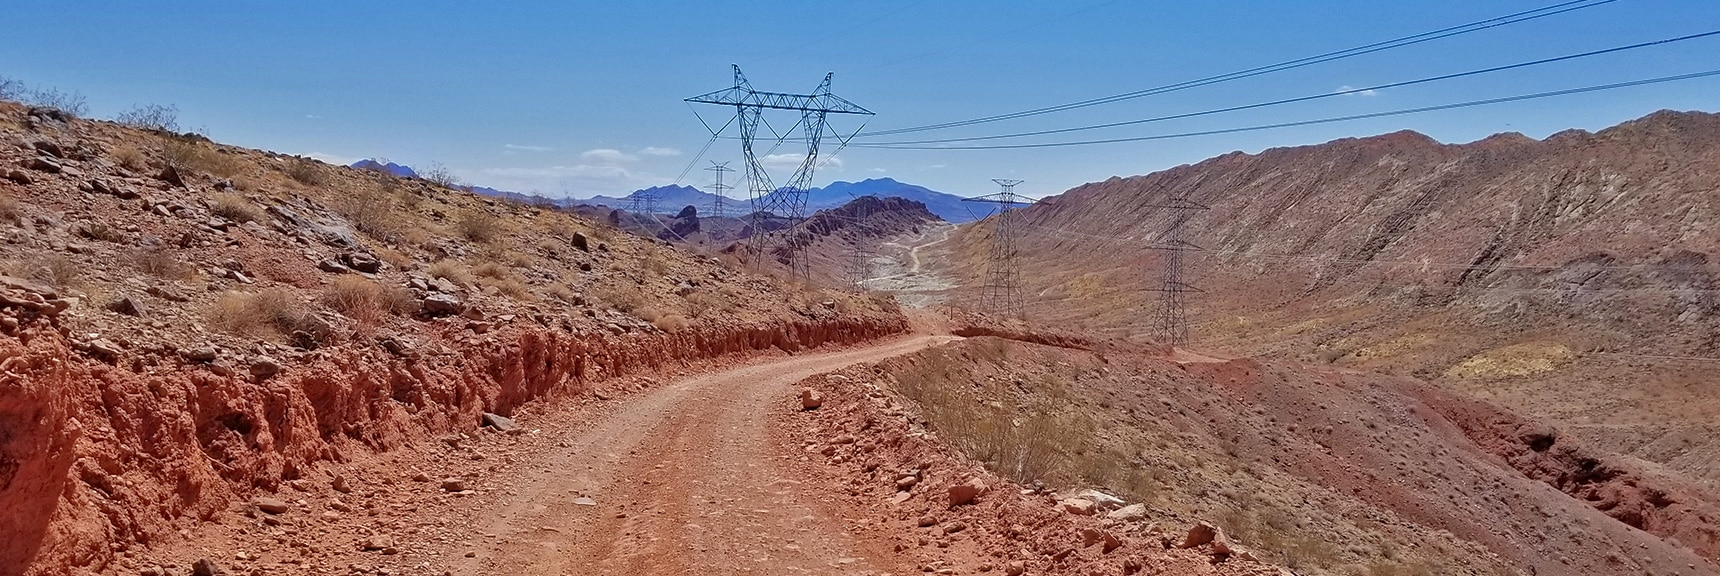 View Back South on Lava Butte Road | Lava Butte | Lake Mead National Recreation Area, Nevada